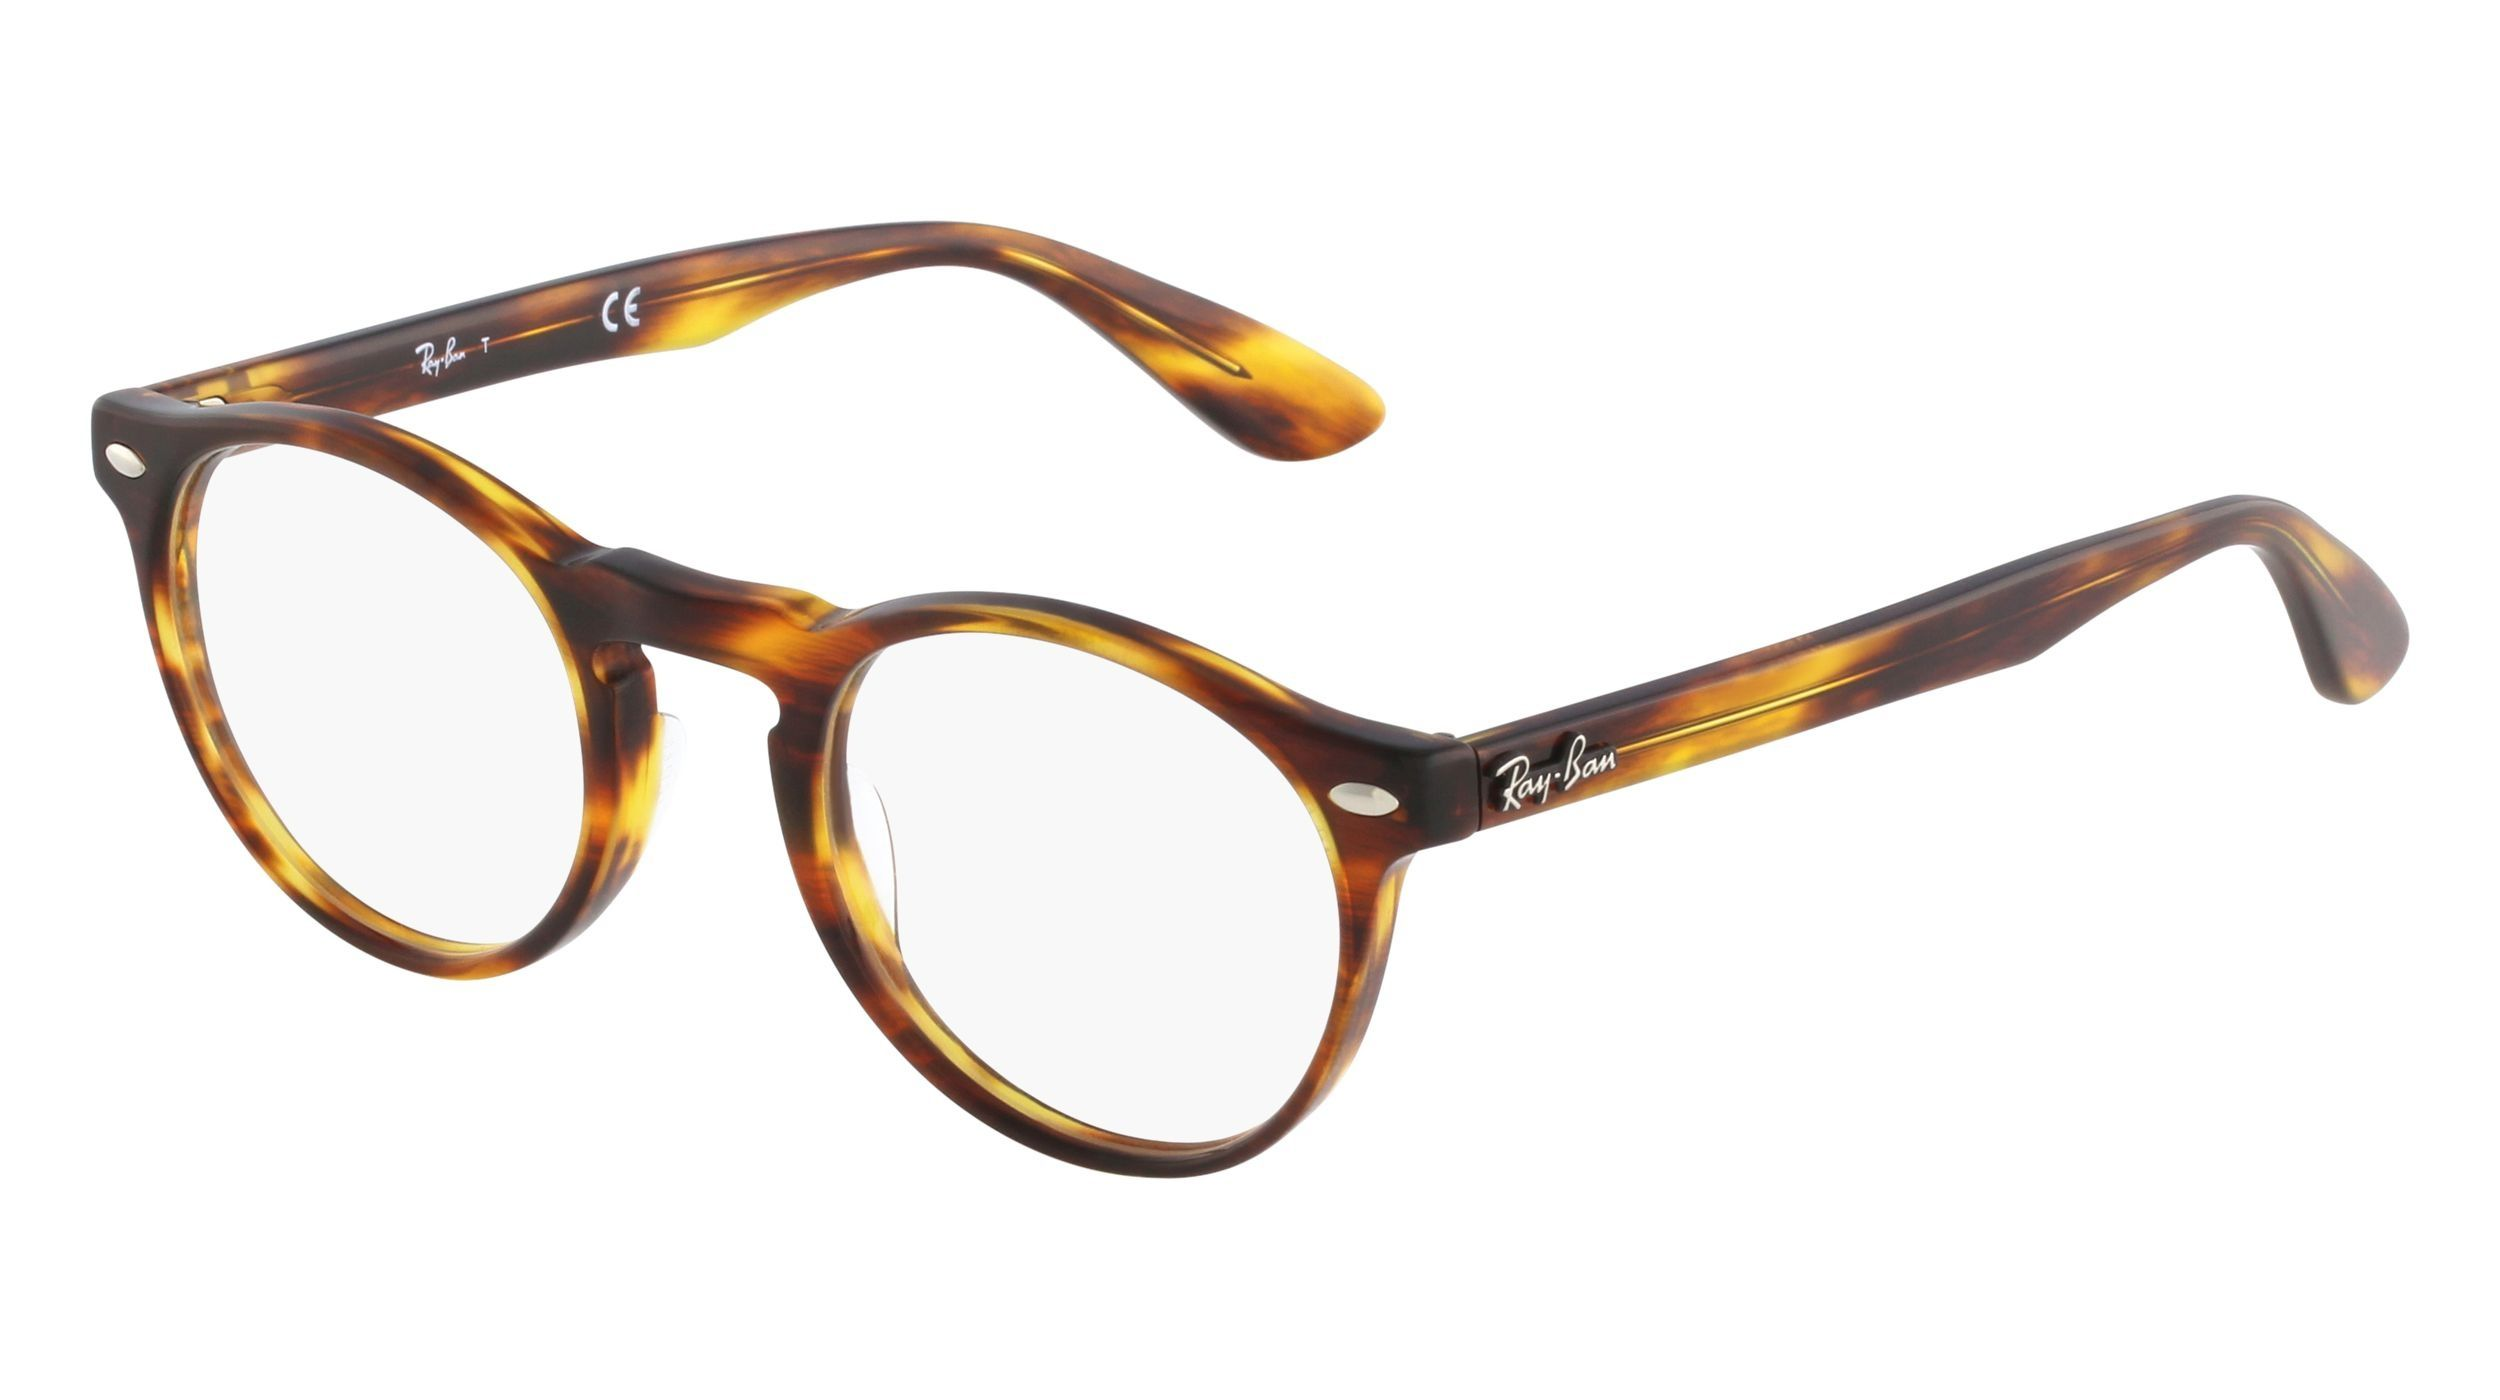 lunette vue claire ray ban femme